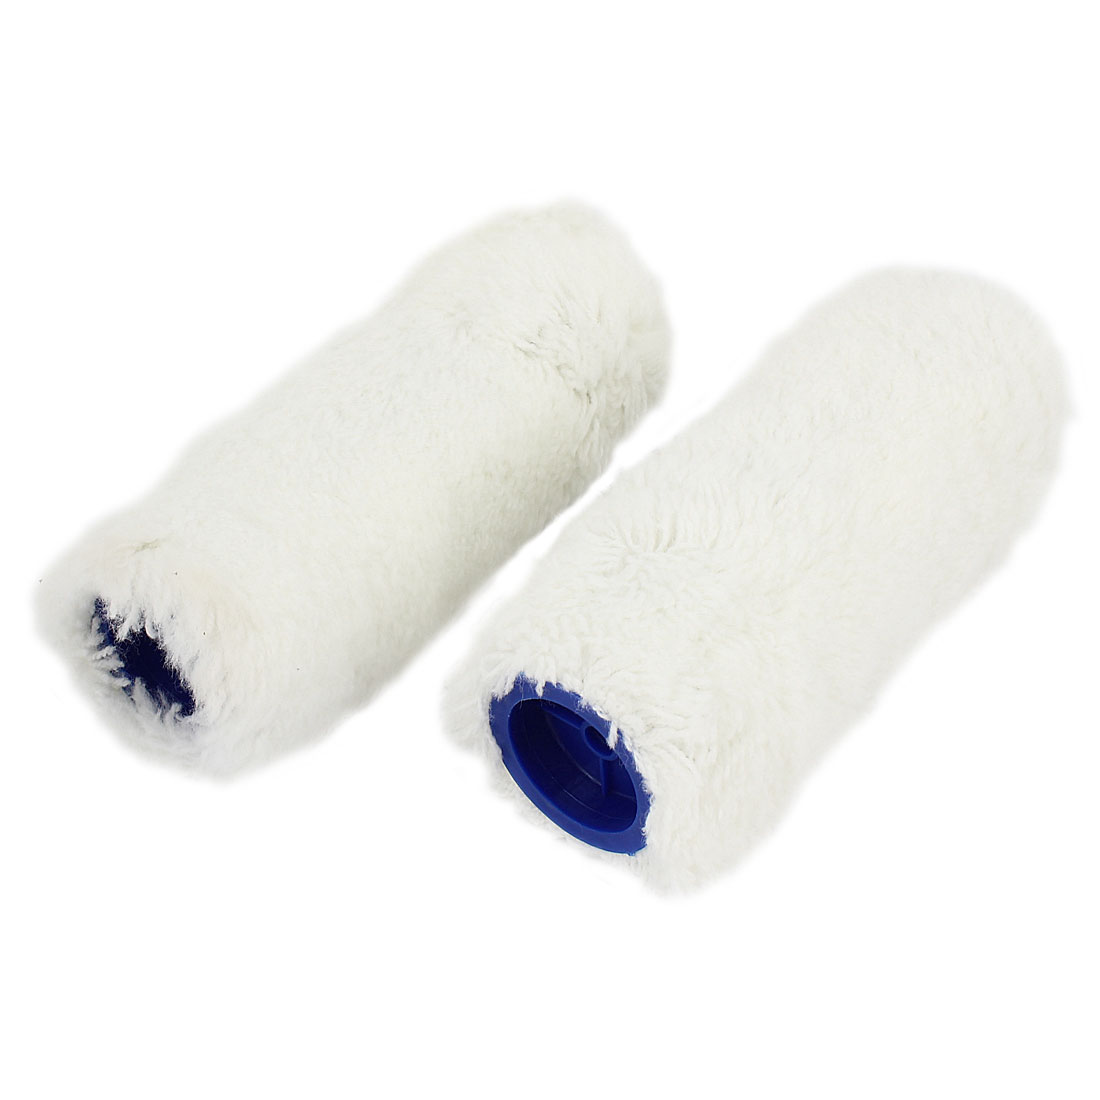 "2pcs House Floor Wall Decoration Paint Roller Sleeve White 6"" Length"